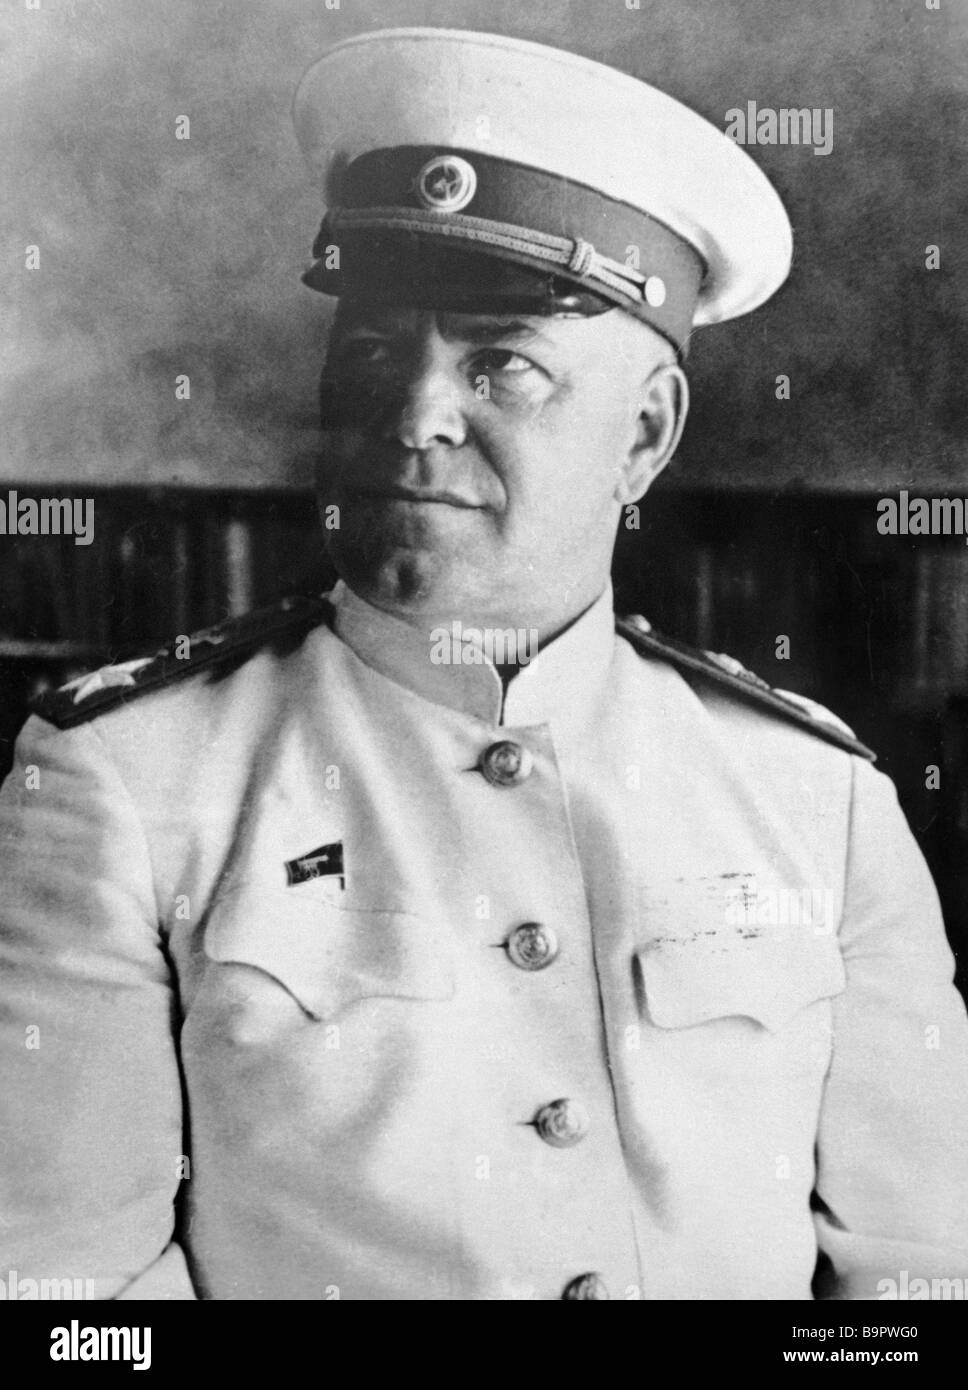 Marshal of the Soviet Union Georgy Zhukov represented his great motherland at the Potsdam conference - Stock Image